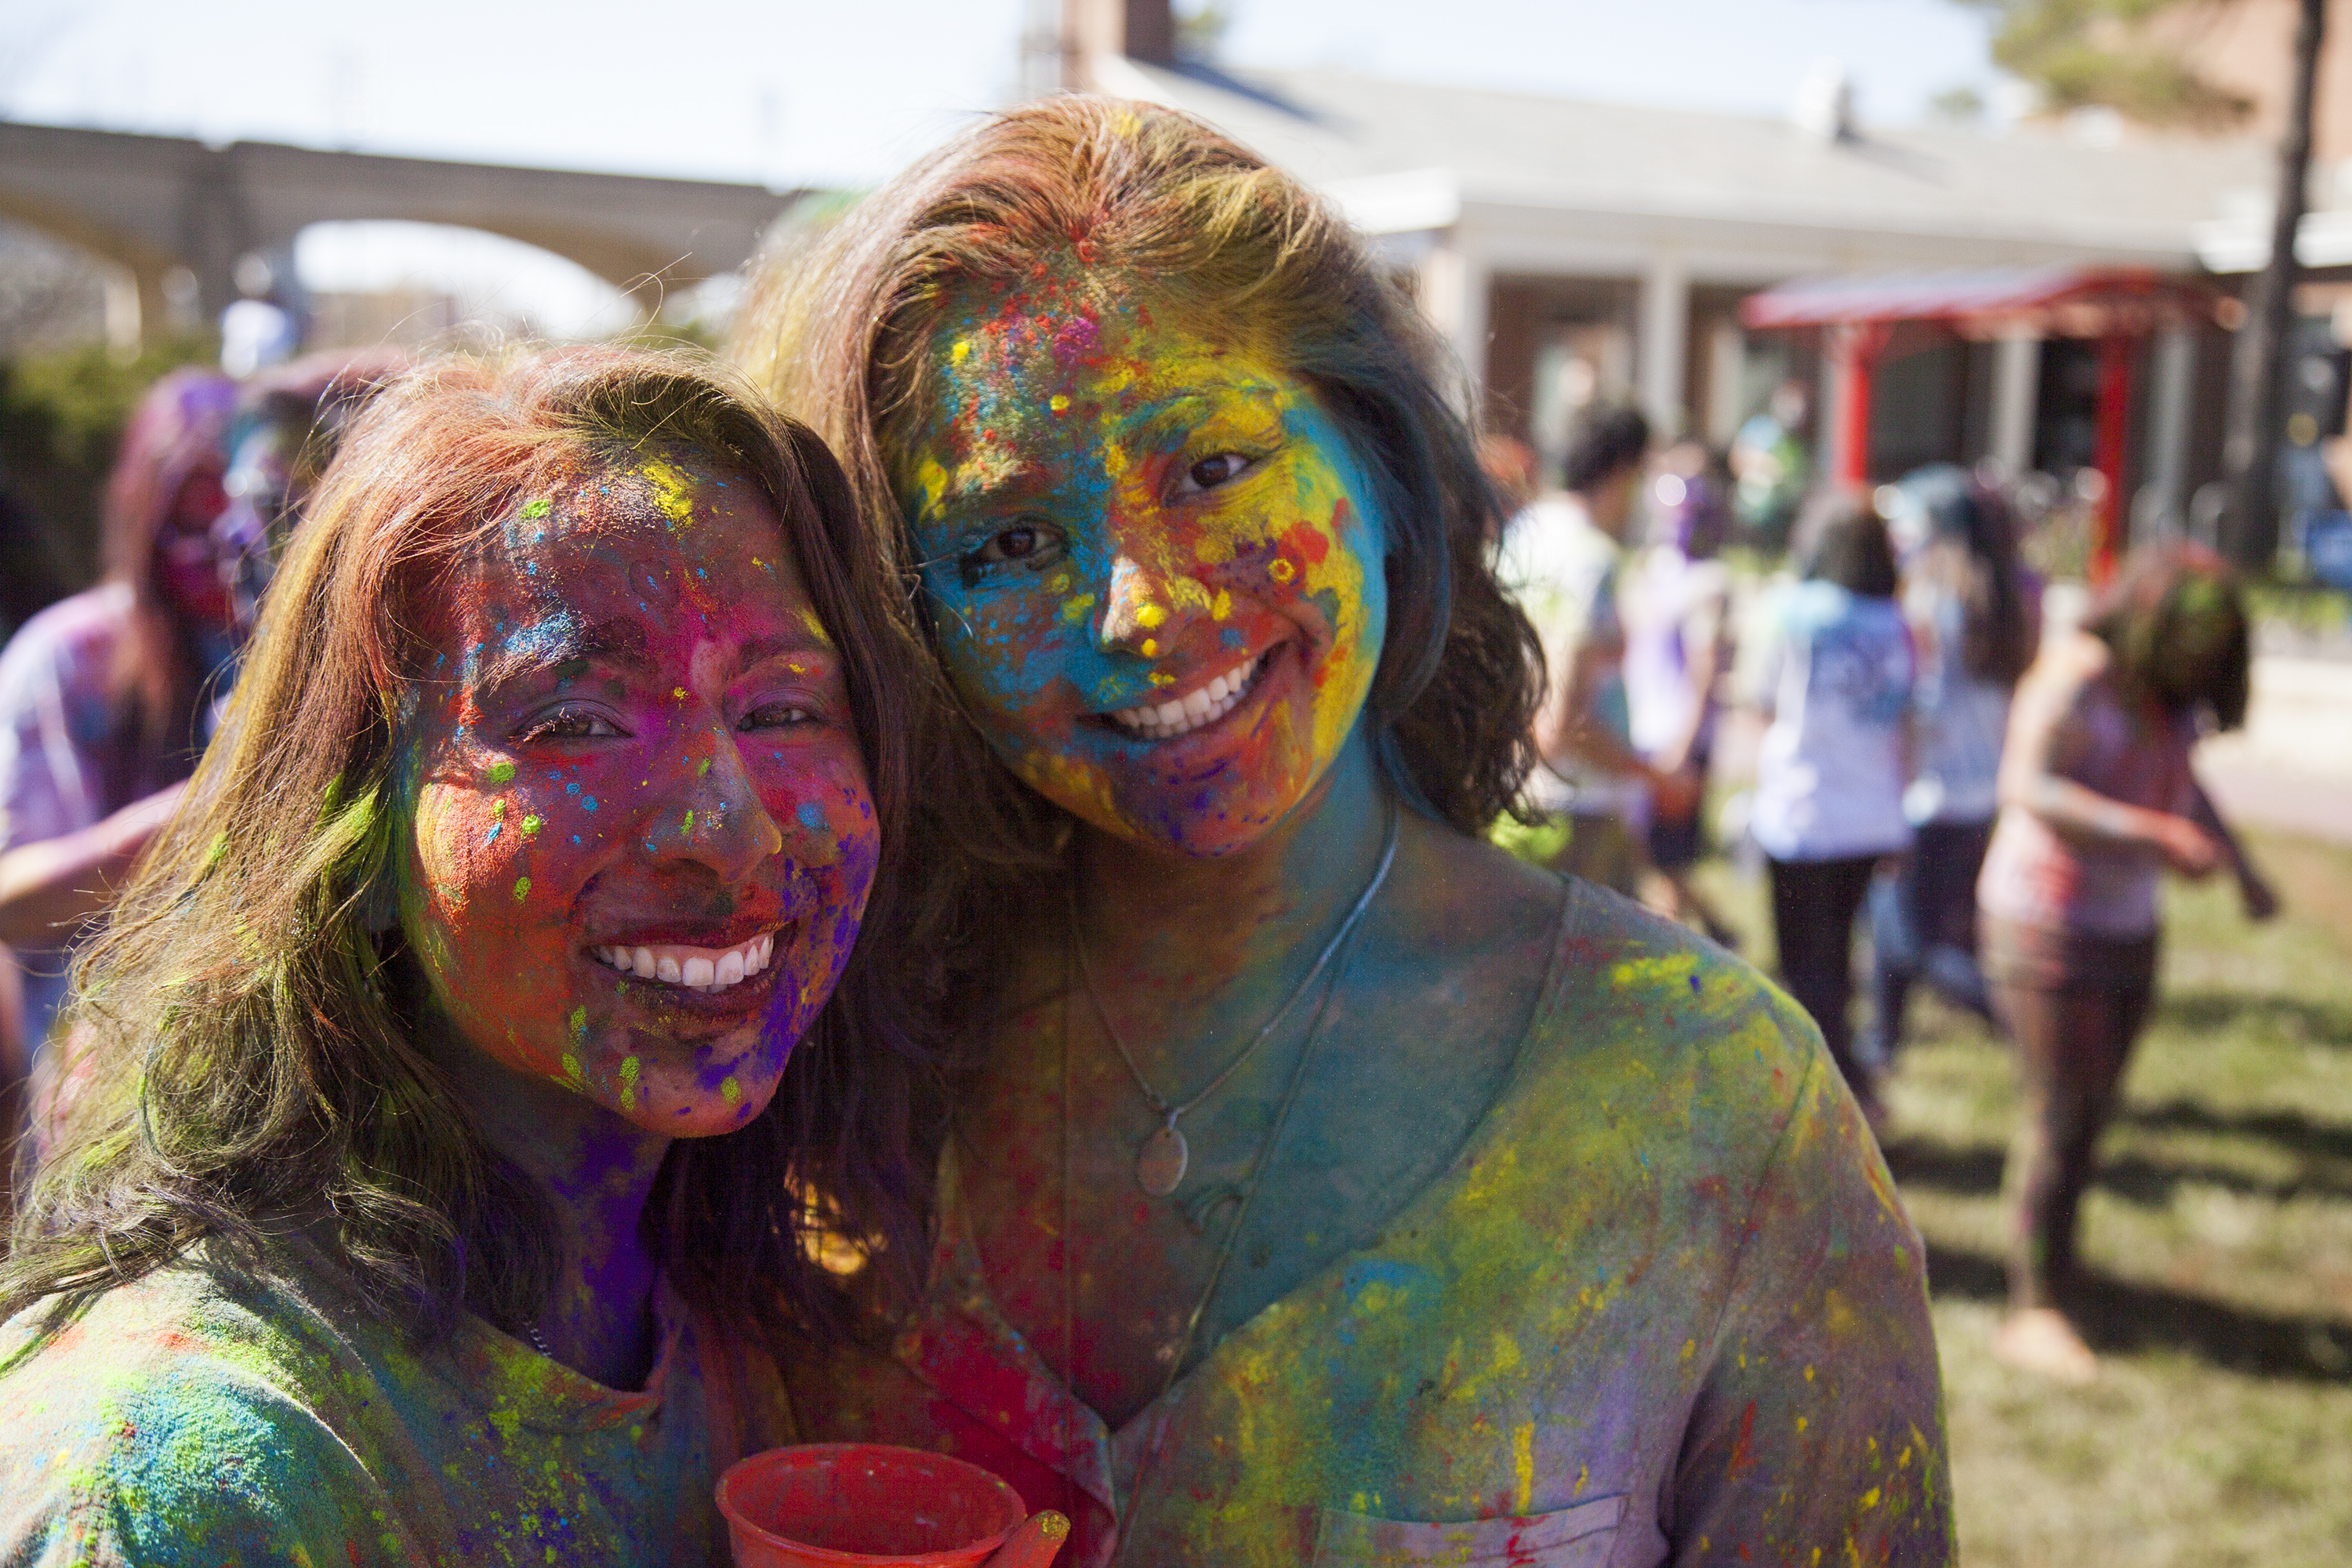 Tatiana Guerra, left and Diana Mohibi took a break from studying to attend Holi in the Mendelsohn Quad pit. ERIC SCHMID/THE STATESMAN